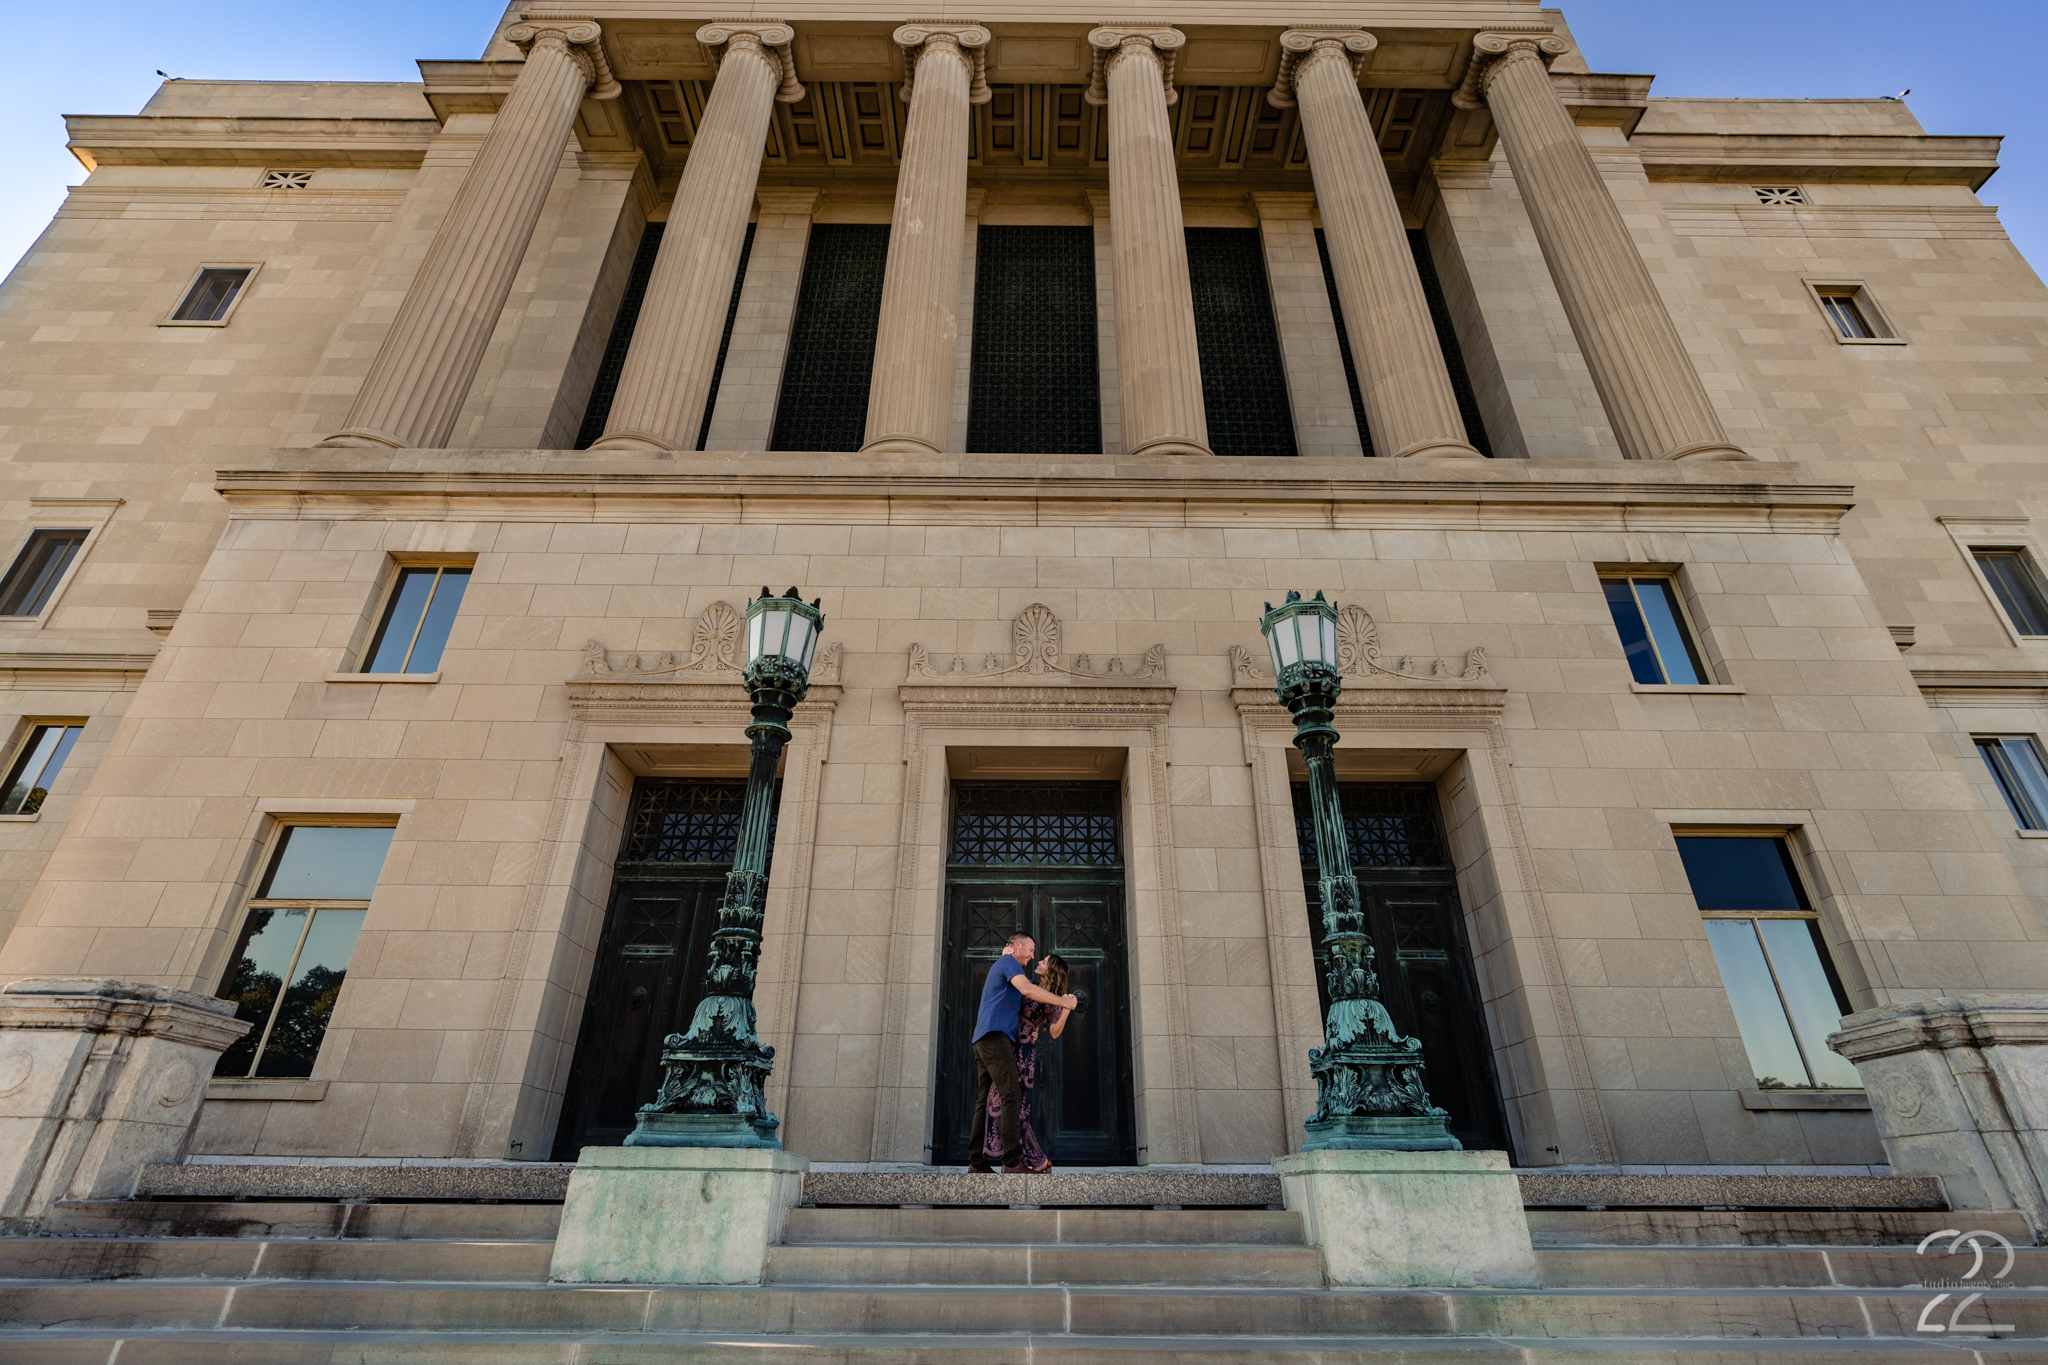 When deciding on a look for your engagement photos it is important to choose locations that match your style. That could be a meadow, a forest, or some amazing architecture. Lance and Rachel brought their 'A' game at the Dayton Art Institute.